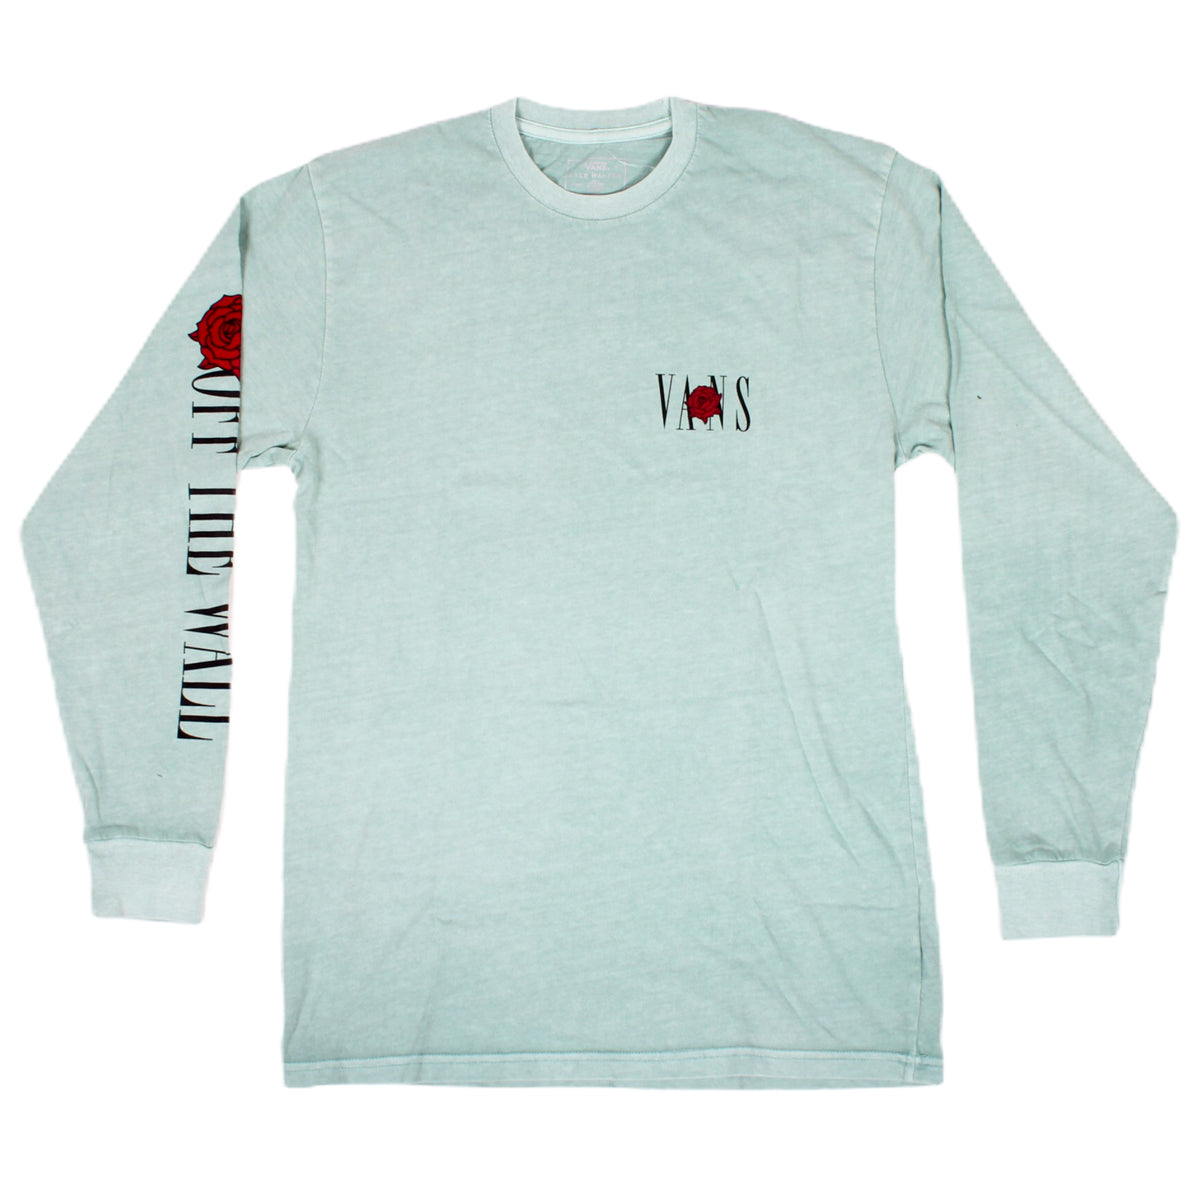 Vans Kyle Walker Rose Longsleeve Surf Blue